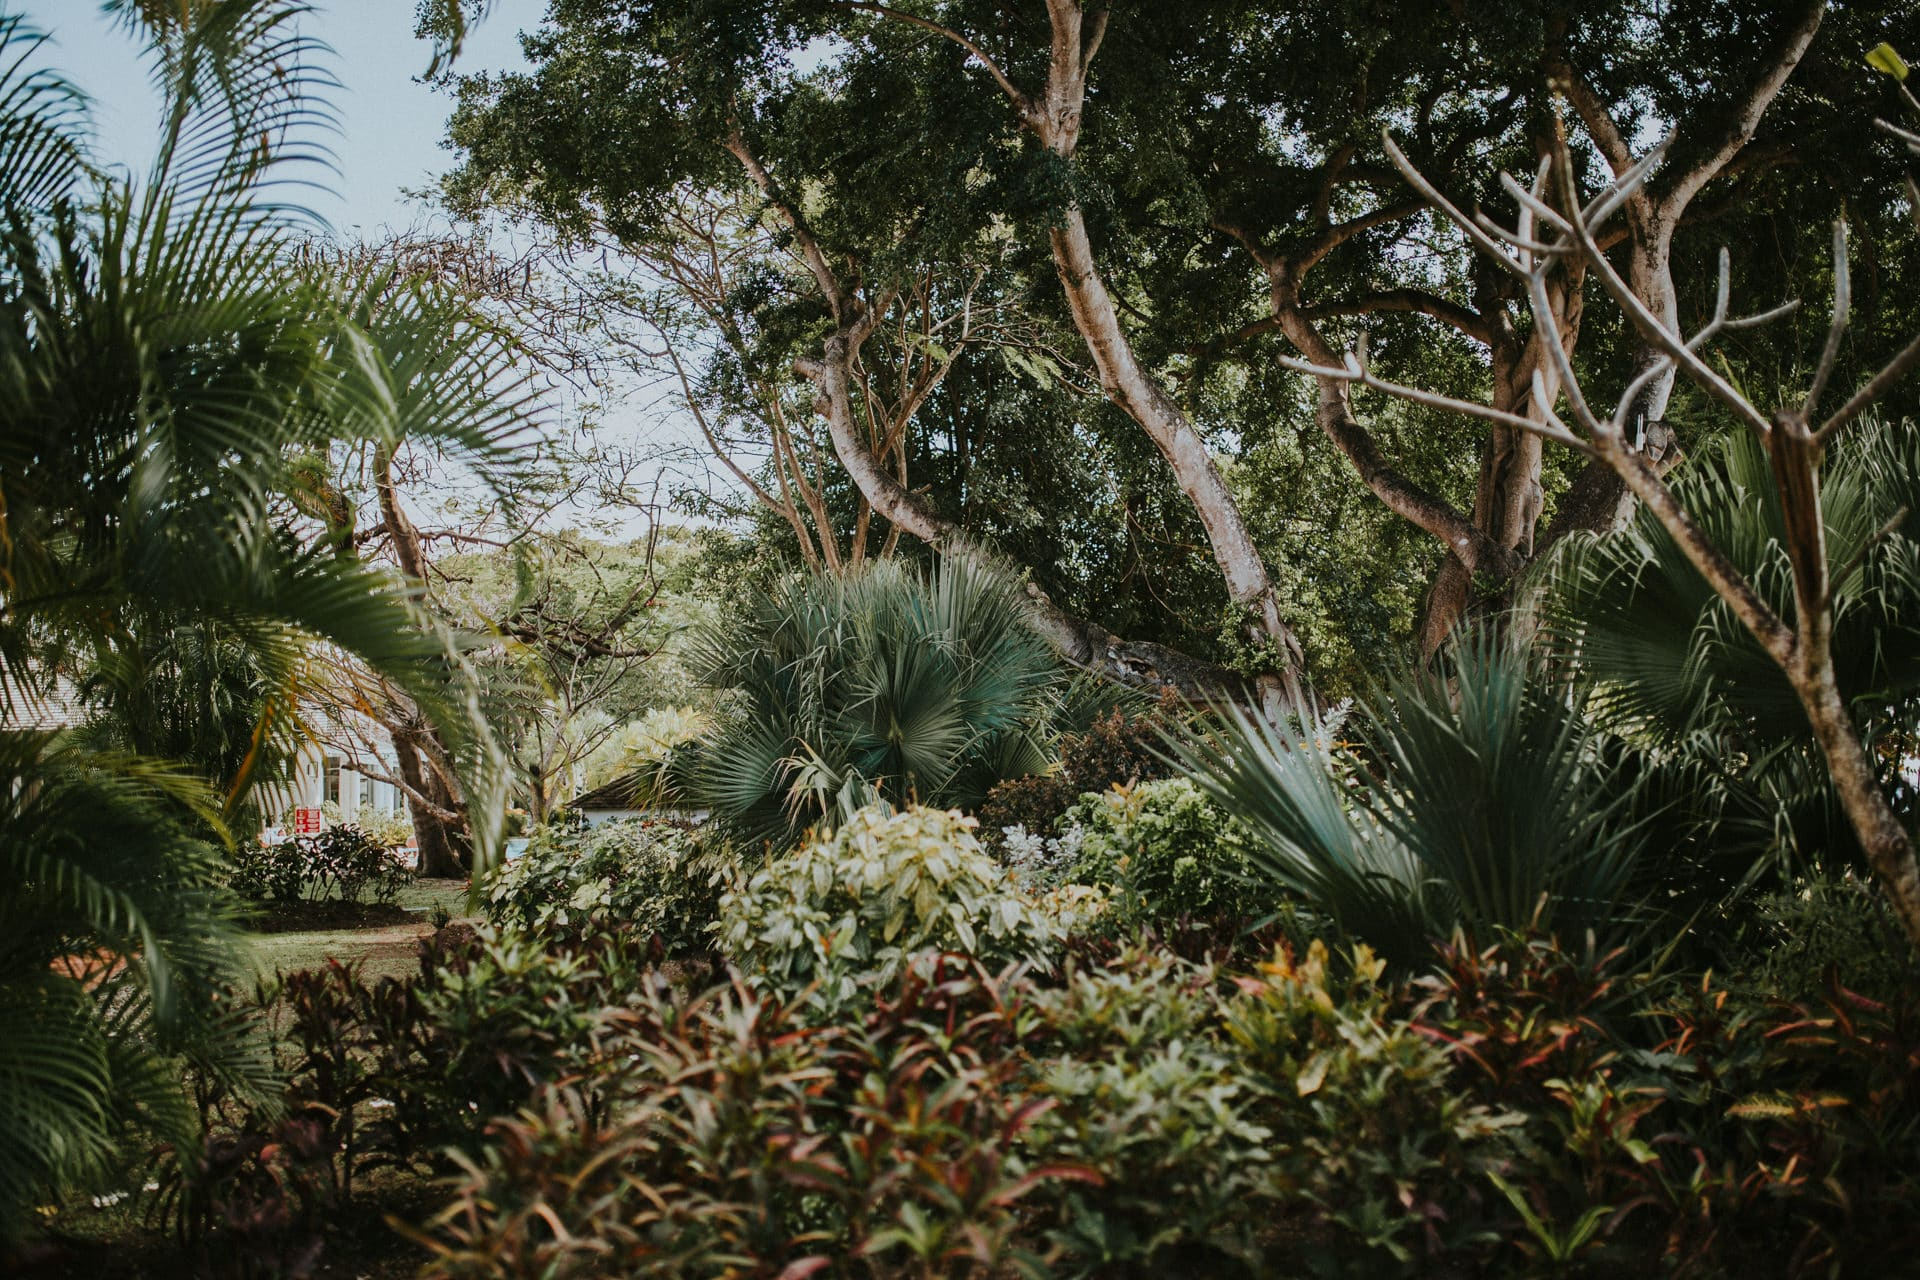 The Barbados Wedding location features palm trees, scrubs and large tropical trees.